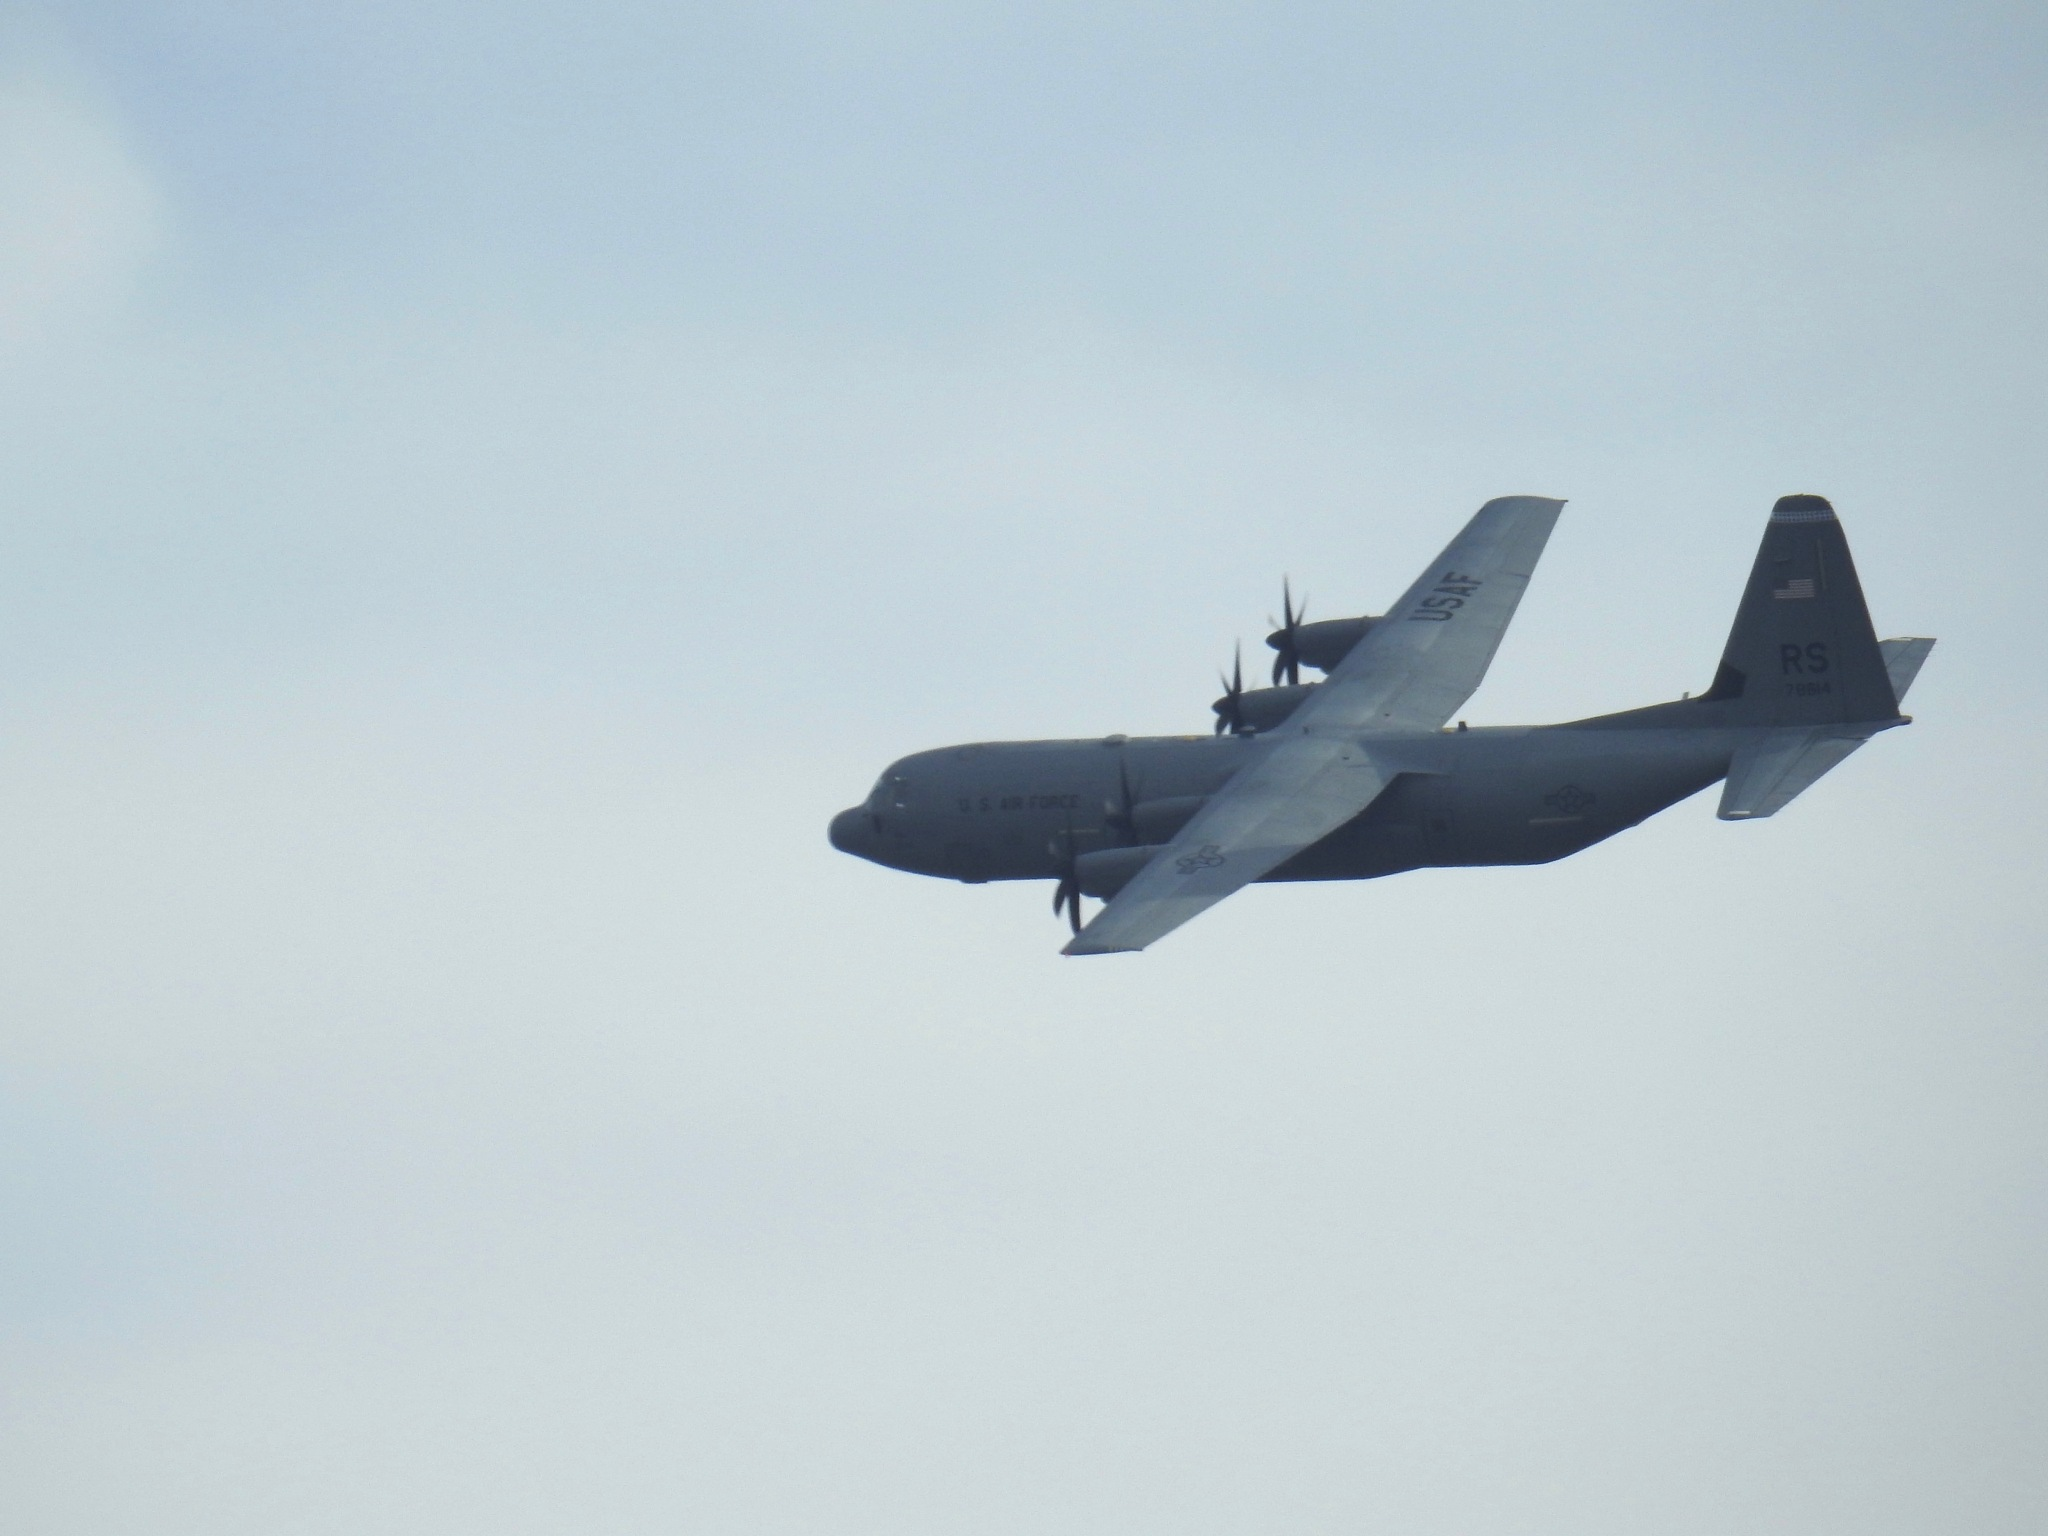 Low flying military aircraft flew over my house, this morning.  by Marisa